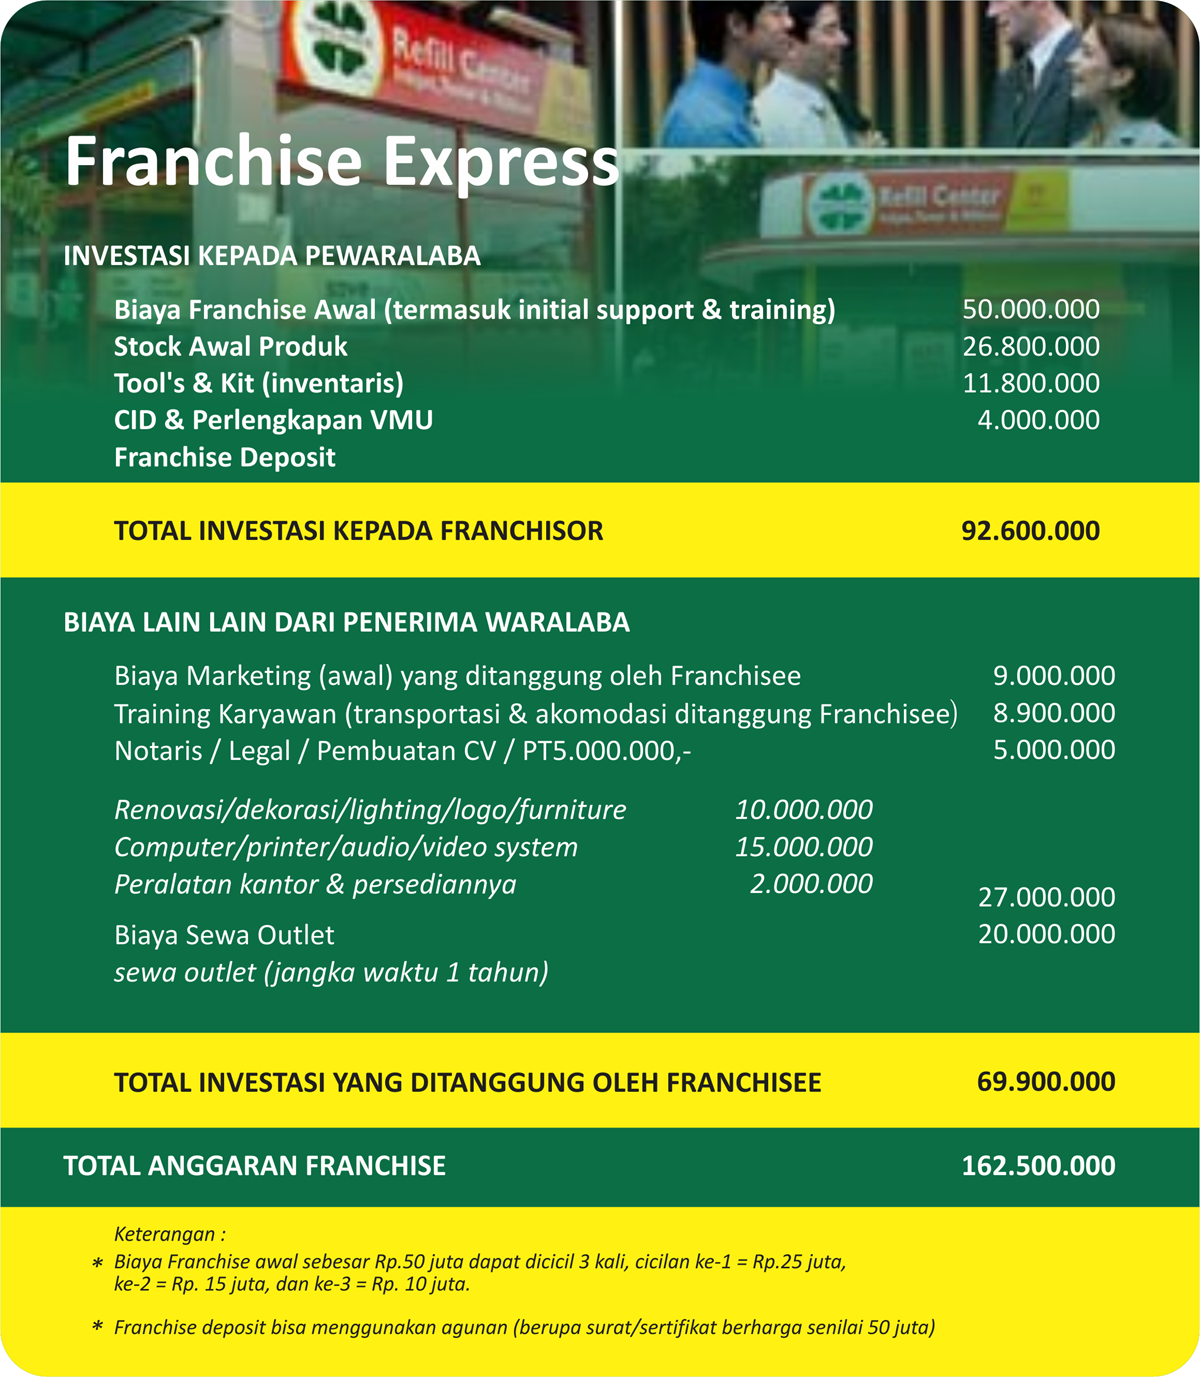 franchise express